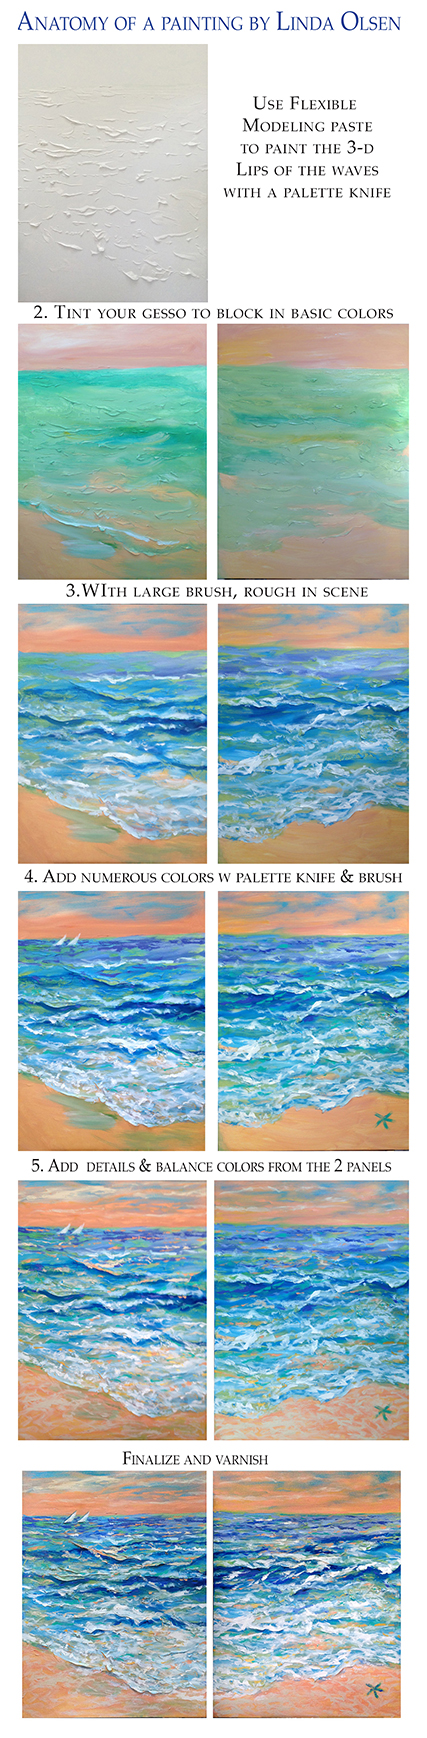 "This is a DYptic painting I have been working on for a couple weeks of an ocean scene. I am actually not completely finished but wanted to share my progress and possibly give a little tutorial for my painting students. SInce each panel is 30x40"", its actually more difficult because of studio space and with matching the two panels for a nice transition. Palette Knife takes a lot of paint which gets quite expensive so I start with the modeling paste to give more 3-dimensionality. AT first I thought the peach sky and sand was too much color but there are a lot of vibrant dabs of color throughout so now I am re assessing. Opinions?"